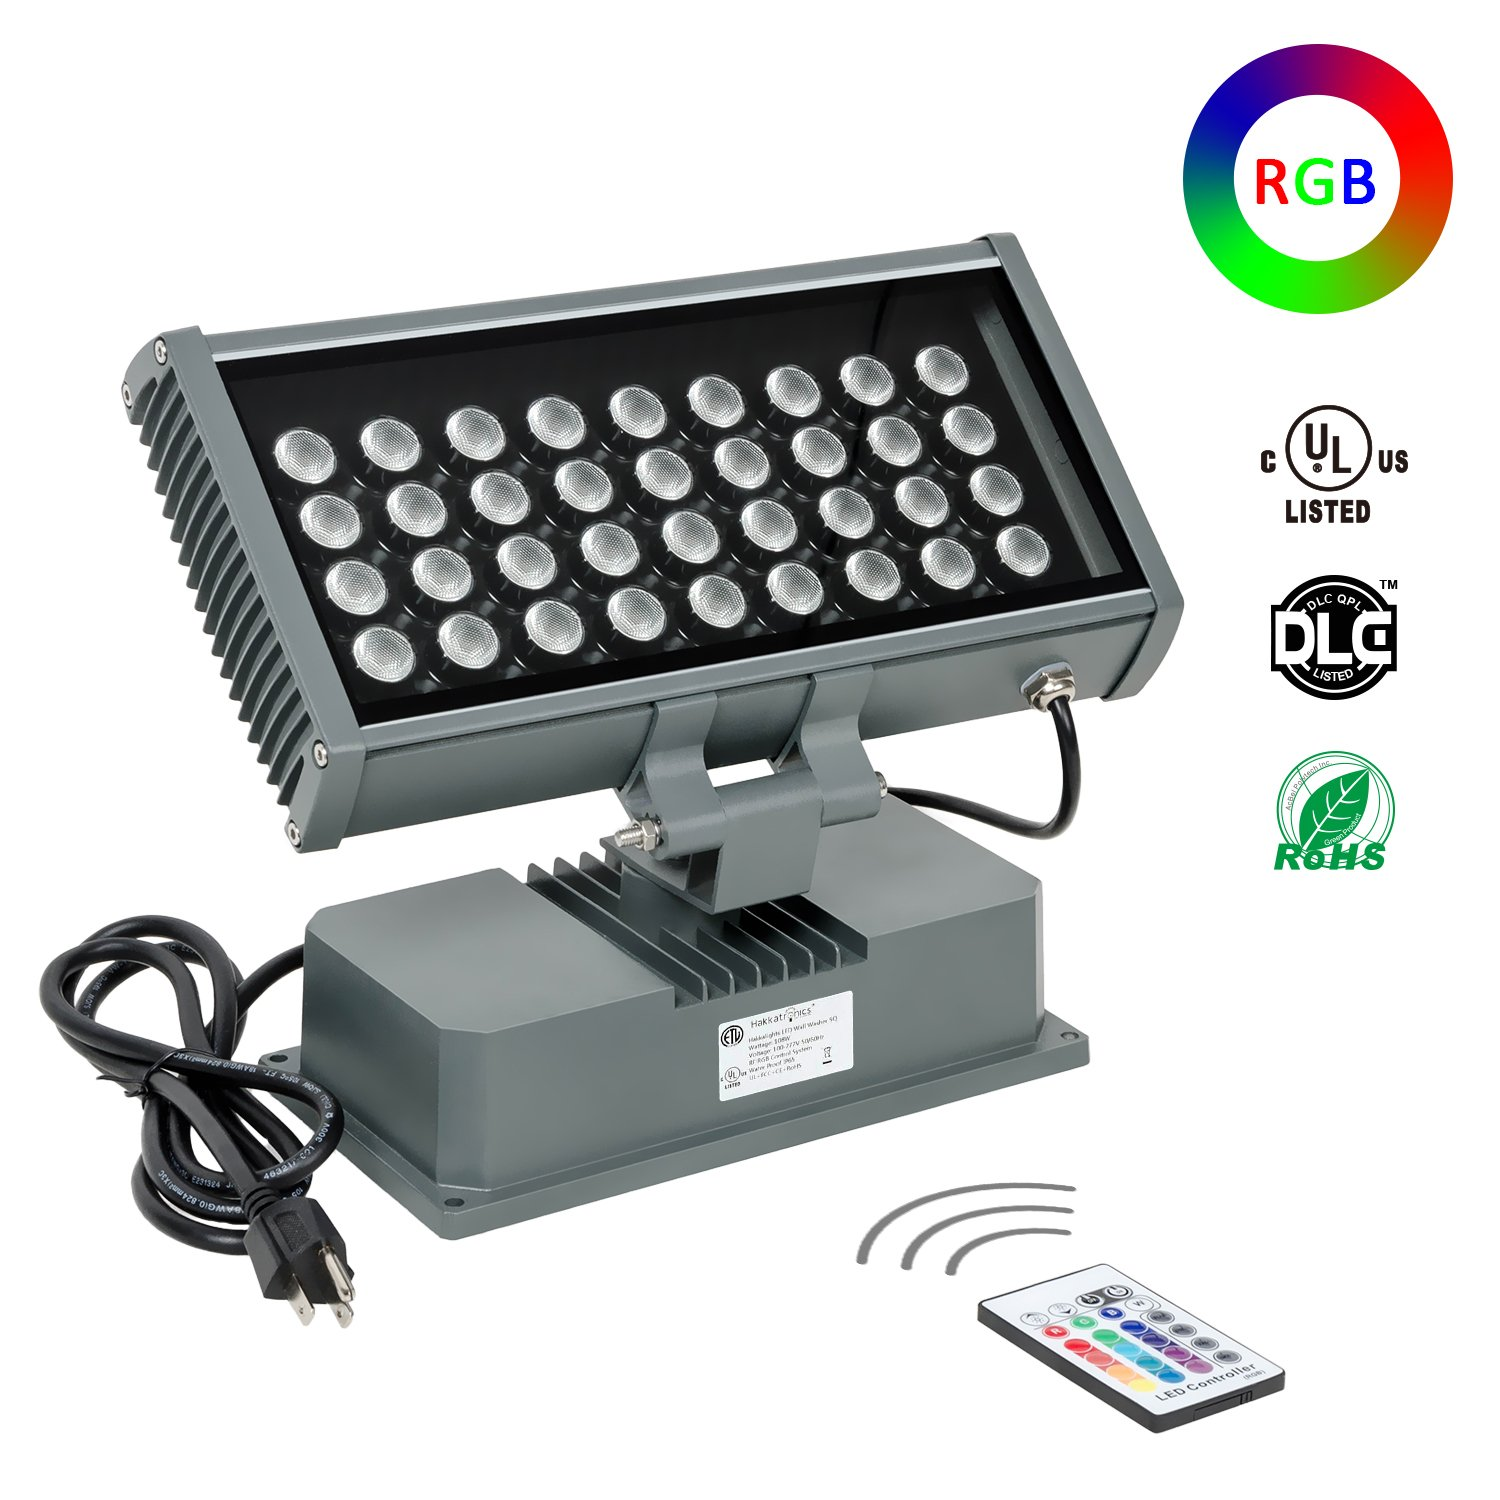 H-TEK 108W RGBW LED Wall Washer Light with RF Remote Controller, Color Changing LED Flood Light for Outdoor/Indoor Lighting Projects Hotels, Resorts, Casinos, Billboards, Building Decorations, Parties